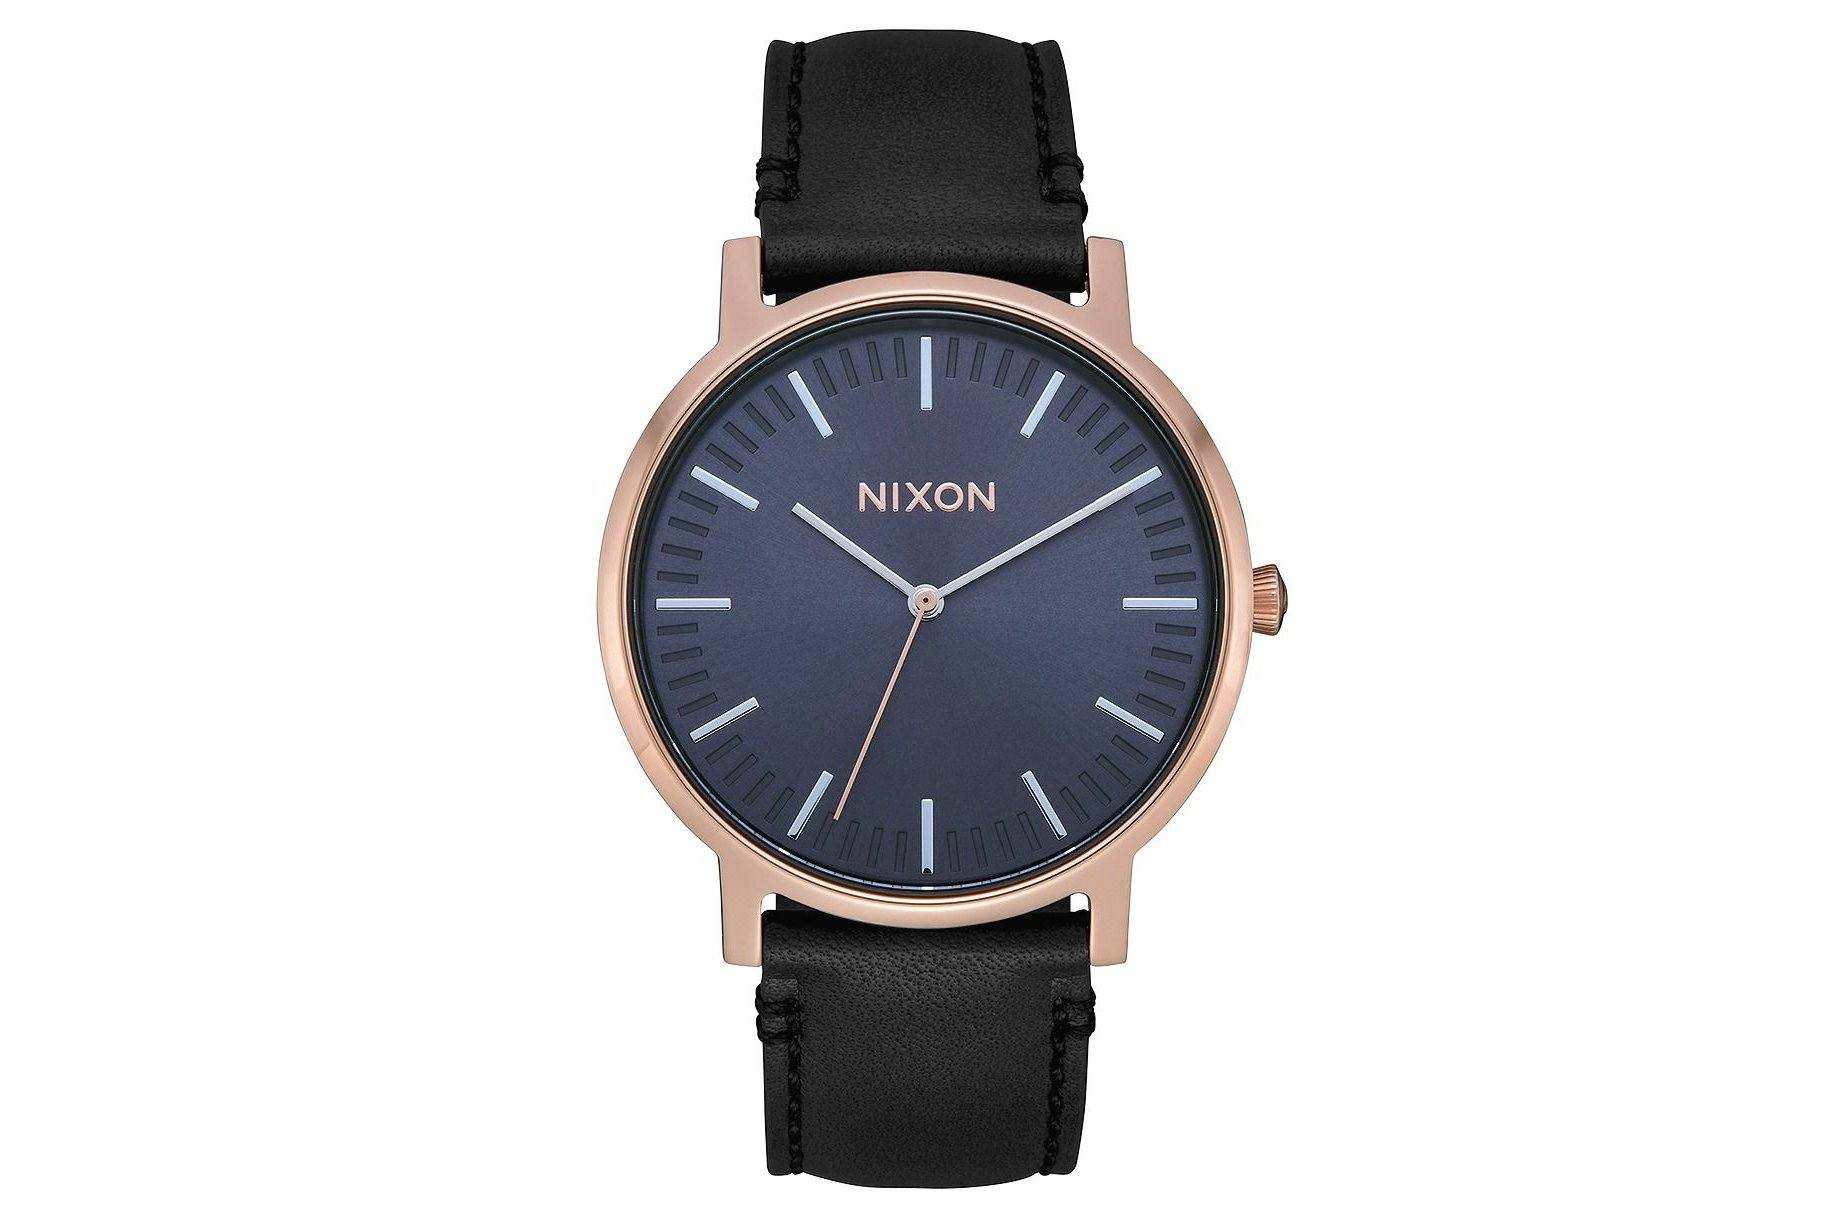 PORTER LEATHER - A1058-3005 WATCHES NIXON